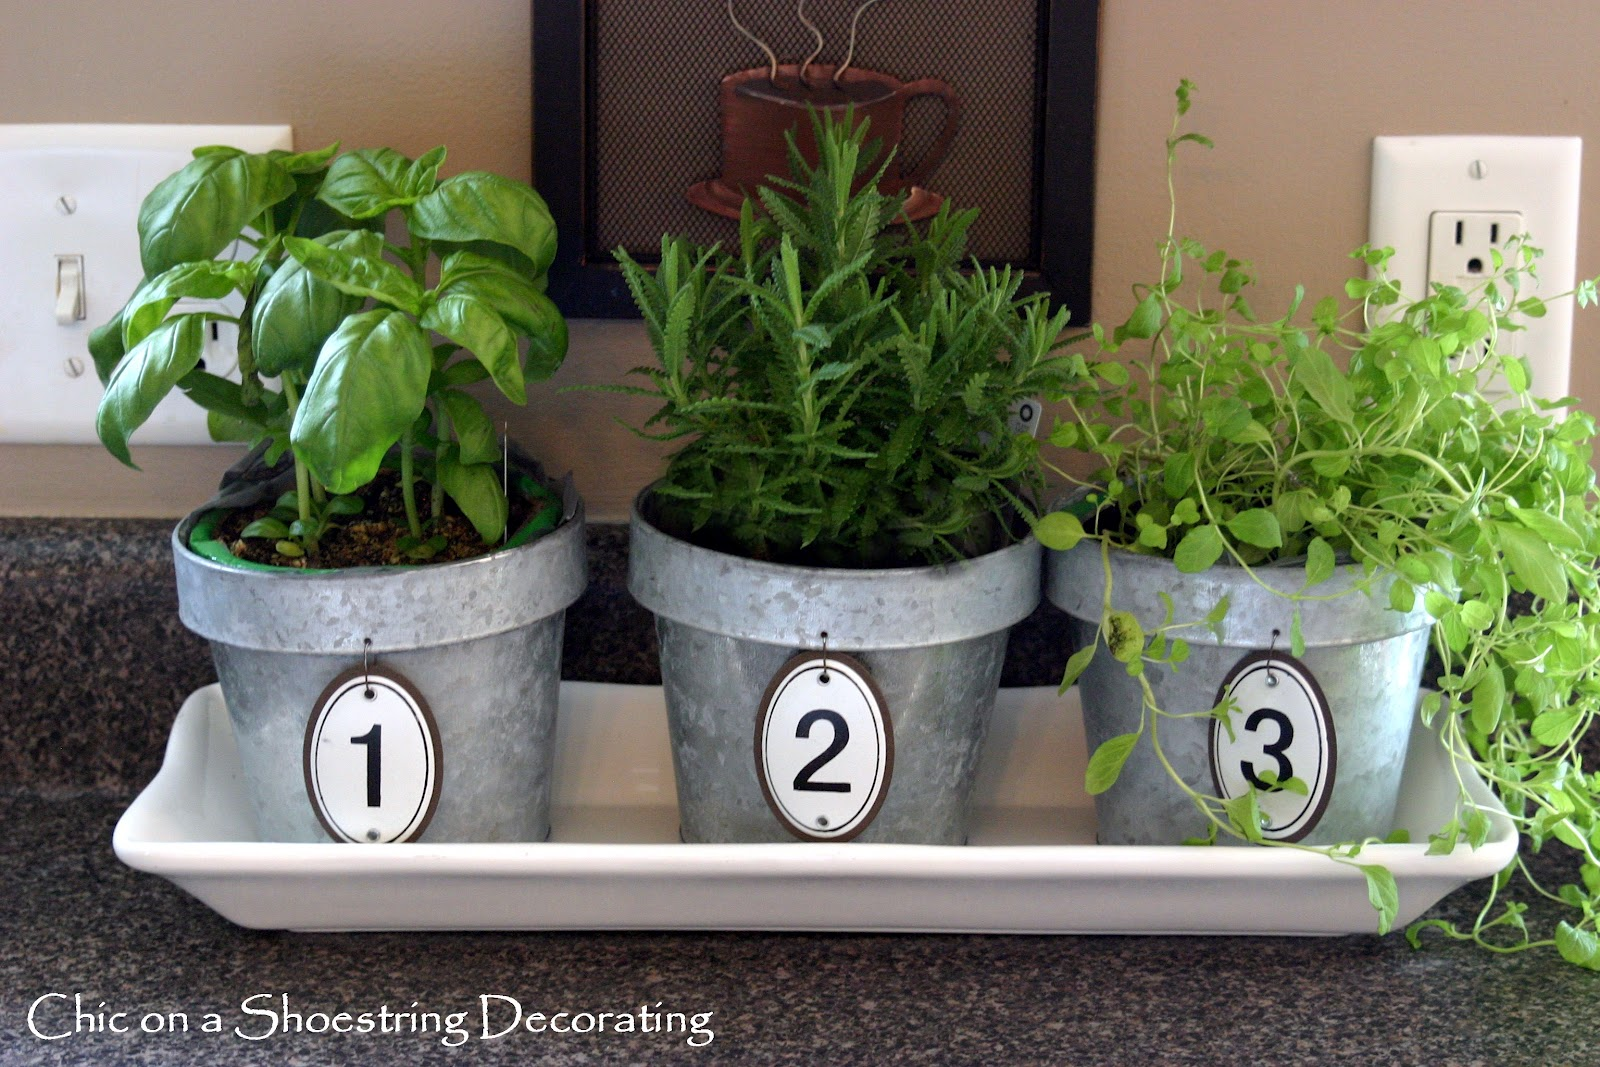 Kitchen Herb Pot Chic On A Shoestring Decorating Kitchen Herbs In Numbered